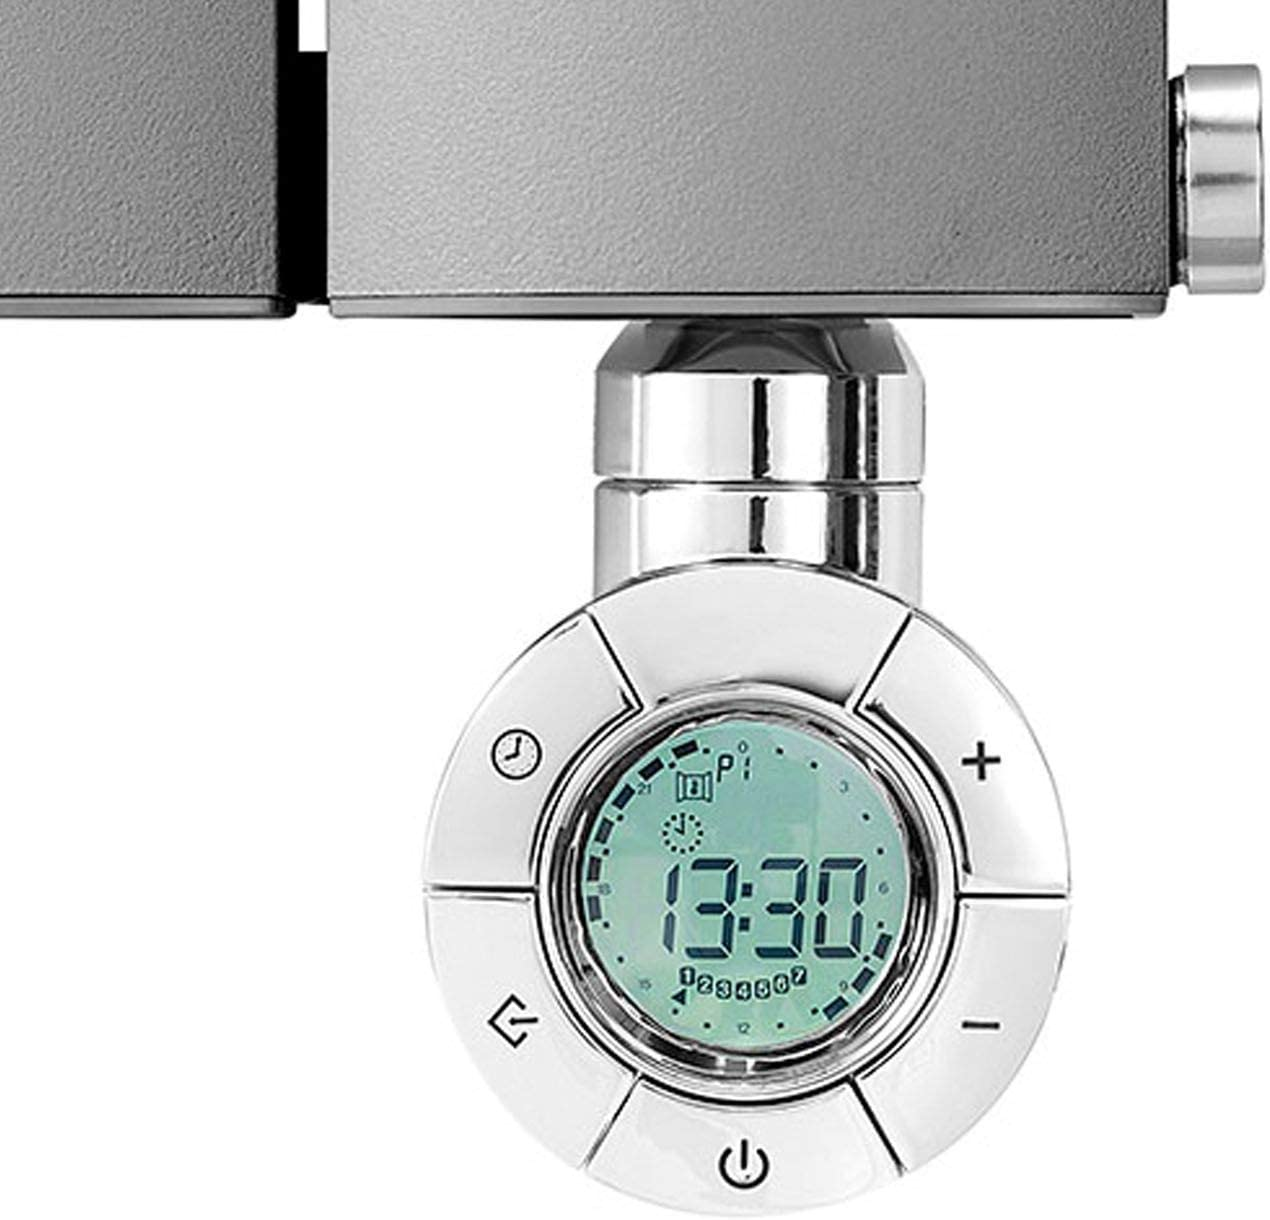 Geyser DYNAMIC Eco Design Chrome Thermostatic Electric Heating Element for Radiators 200W Towel Rails and Towel Warmers